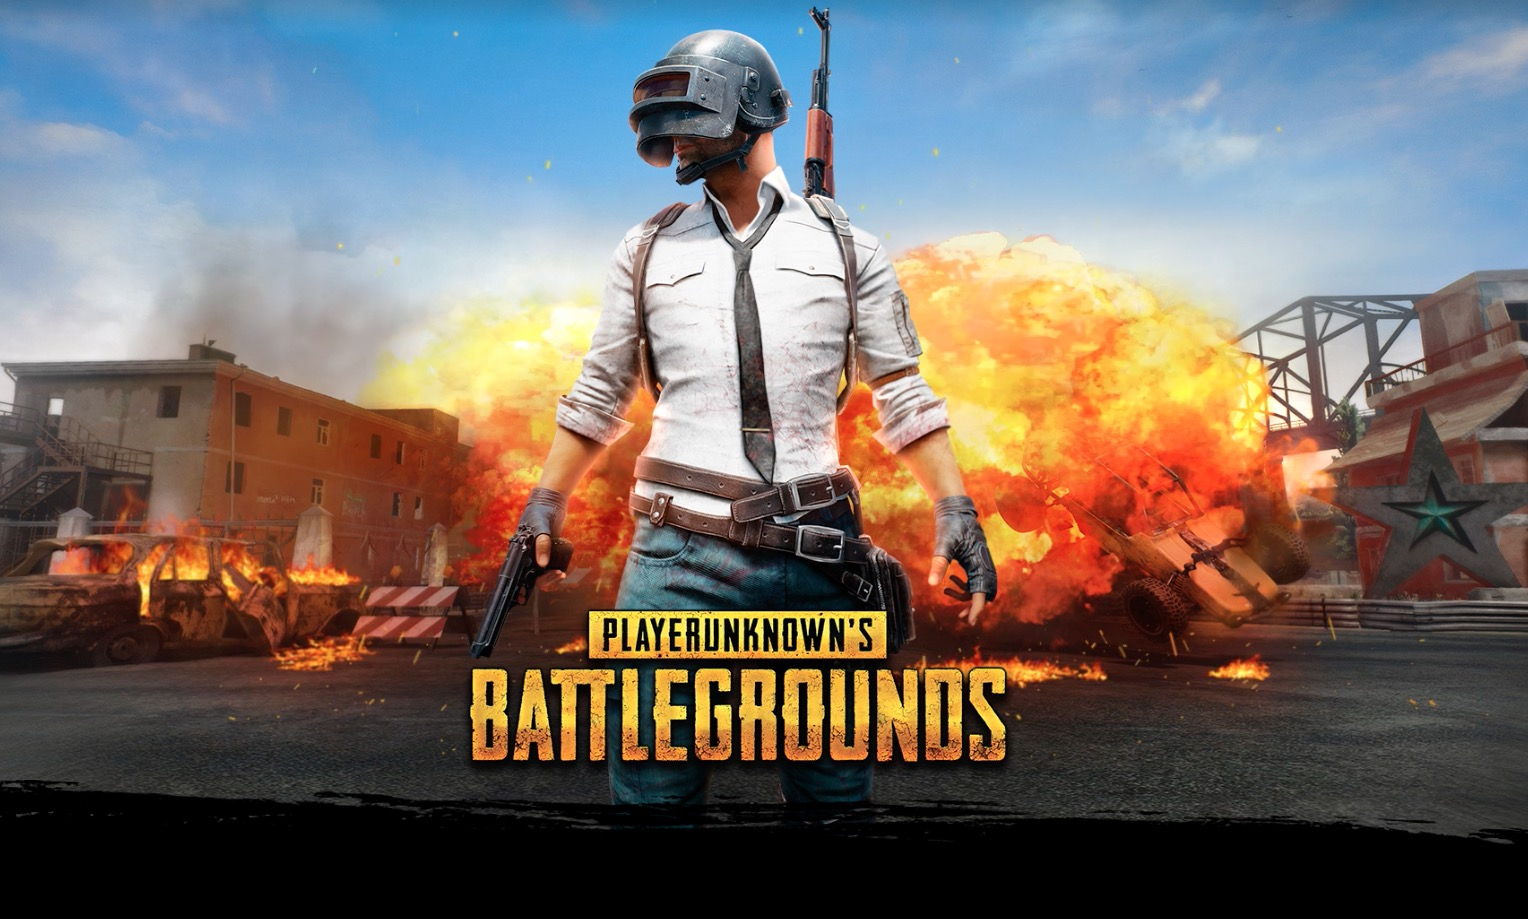 Pubg Ps4 Pro Hdr: PUBG For PS4: Which Edition To Buy?